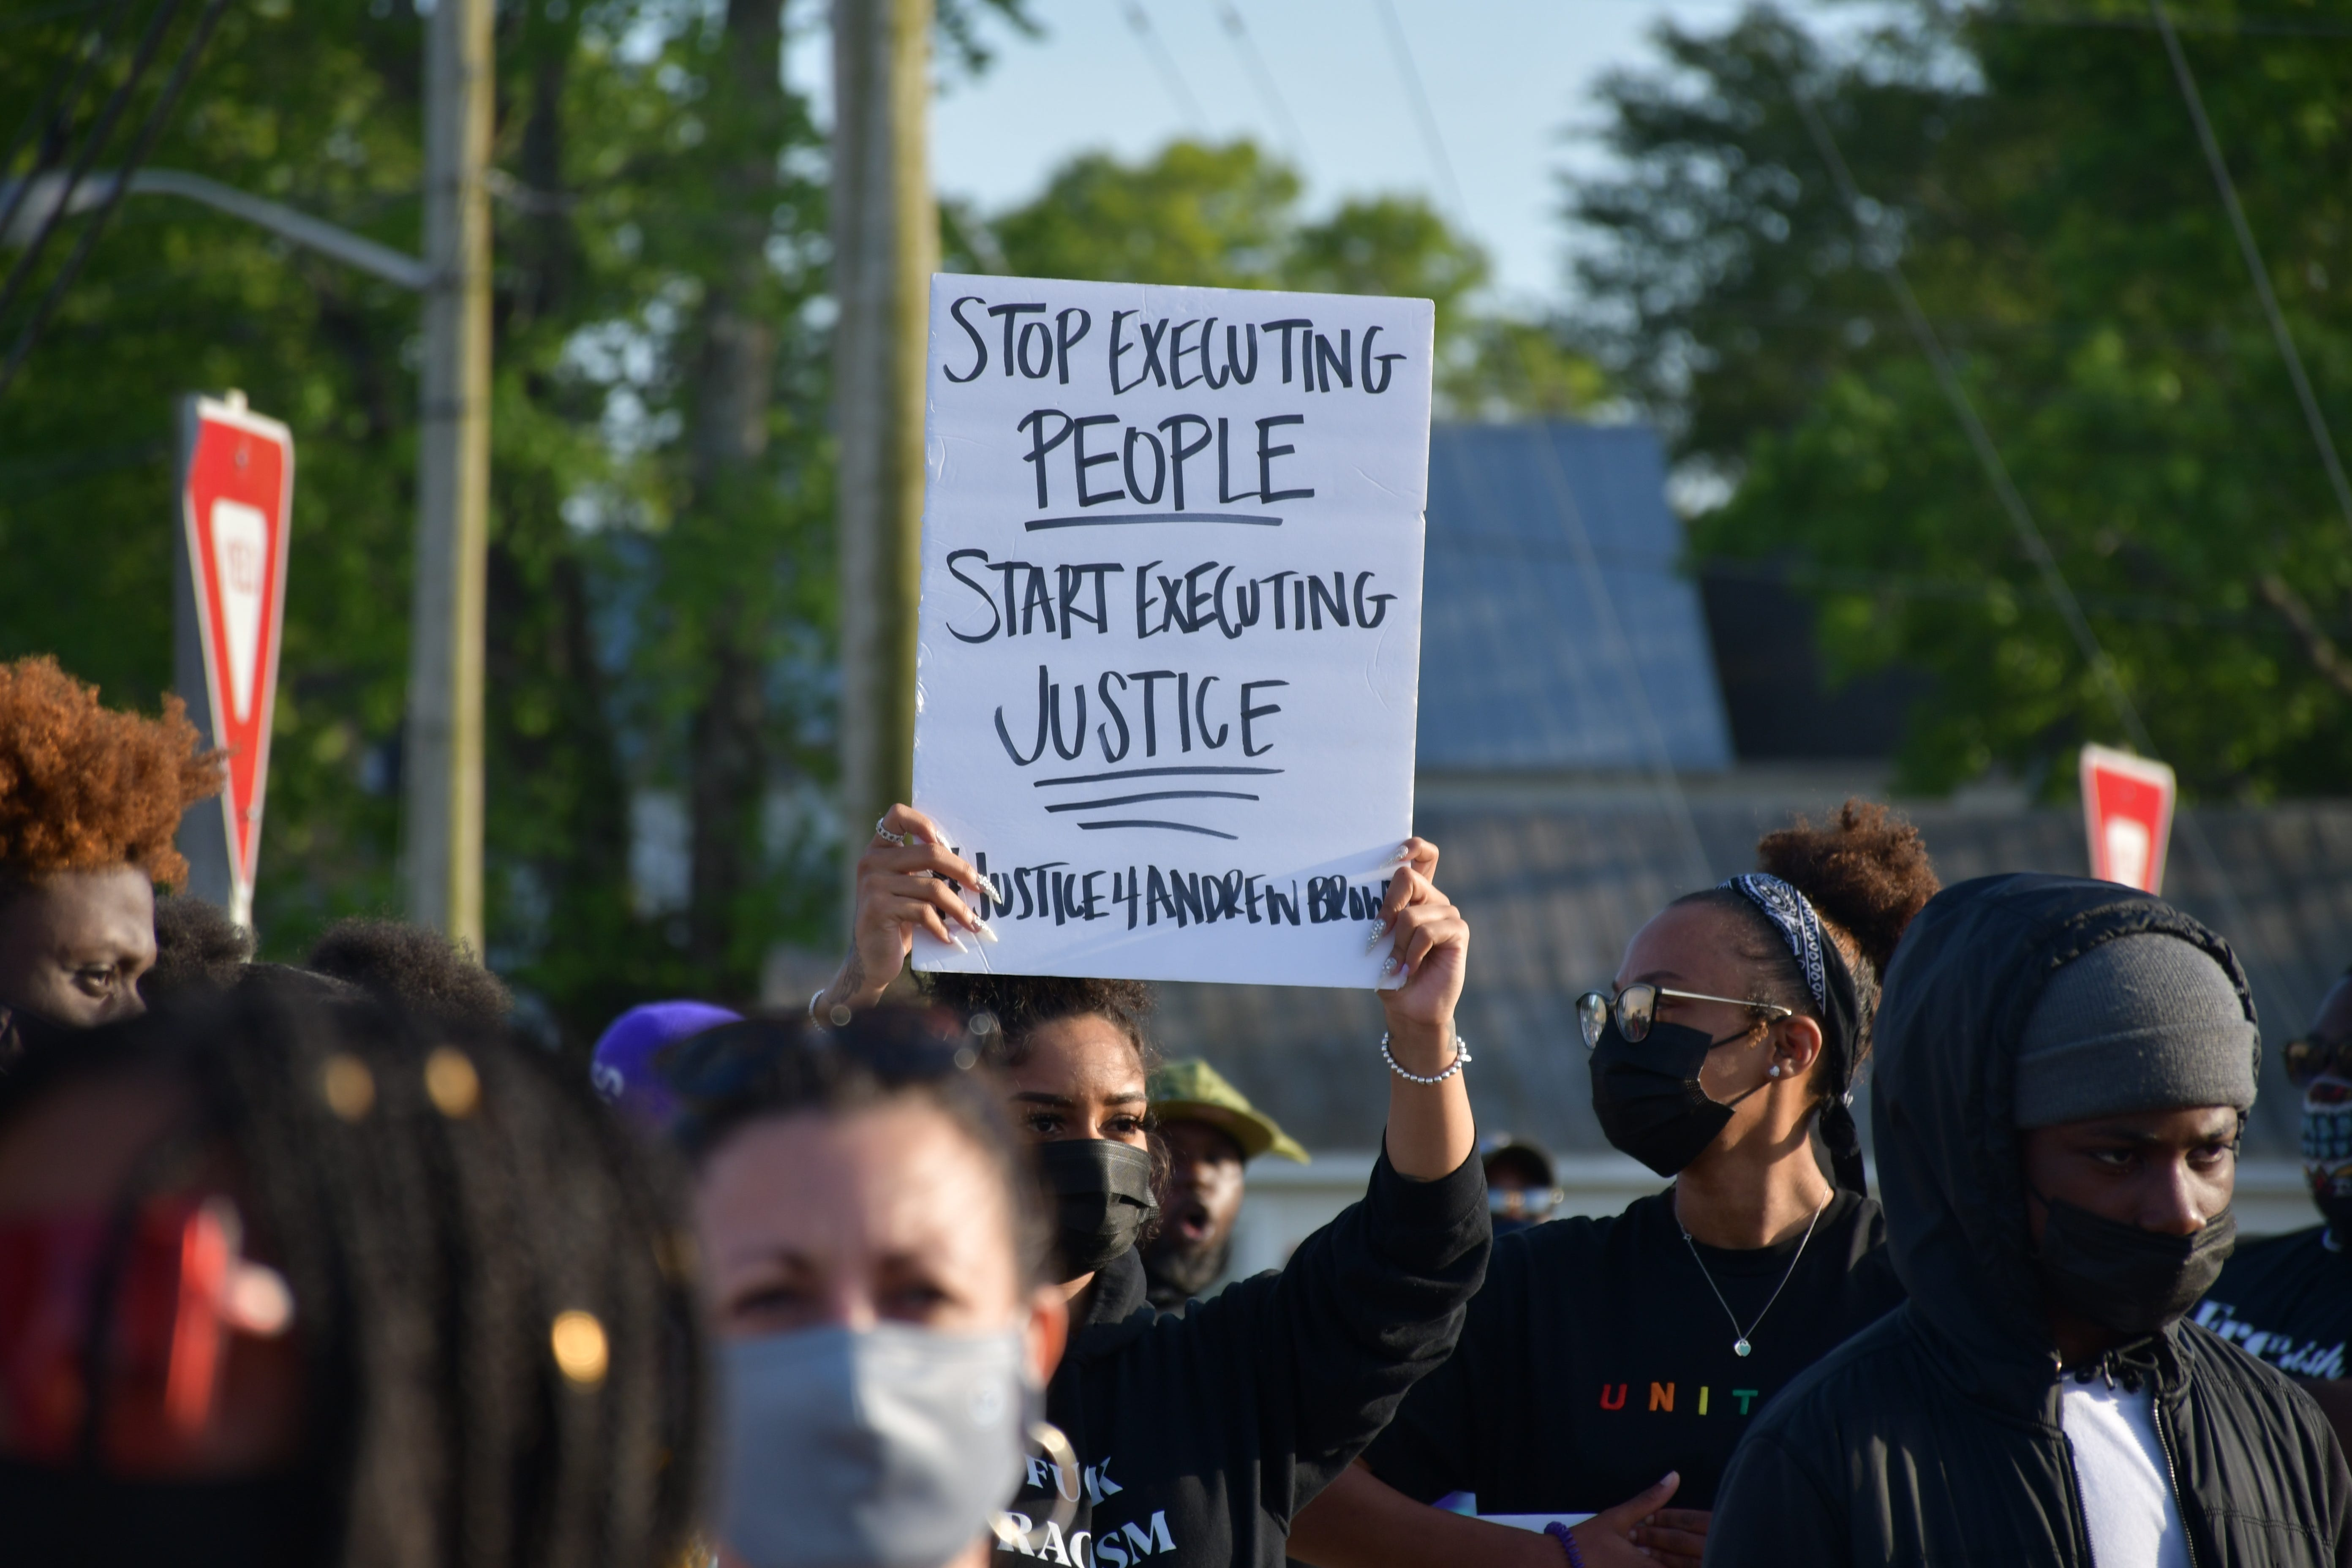 Police are fueling outrage over Andrew Brown Jr. s death by withholding information, experts say